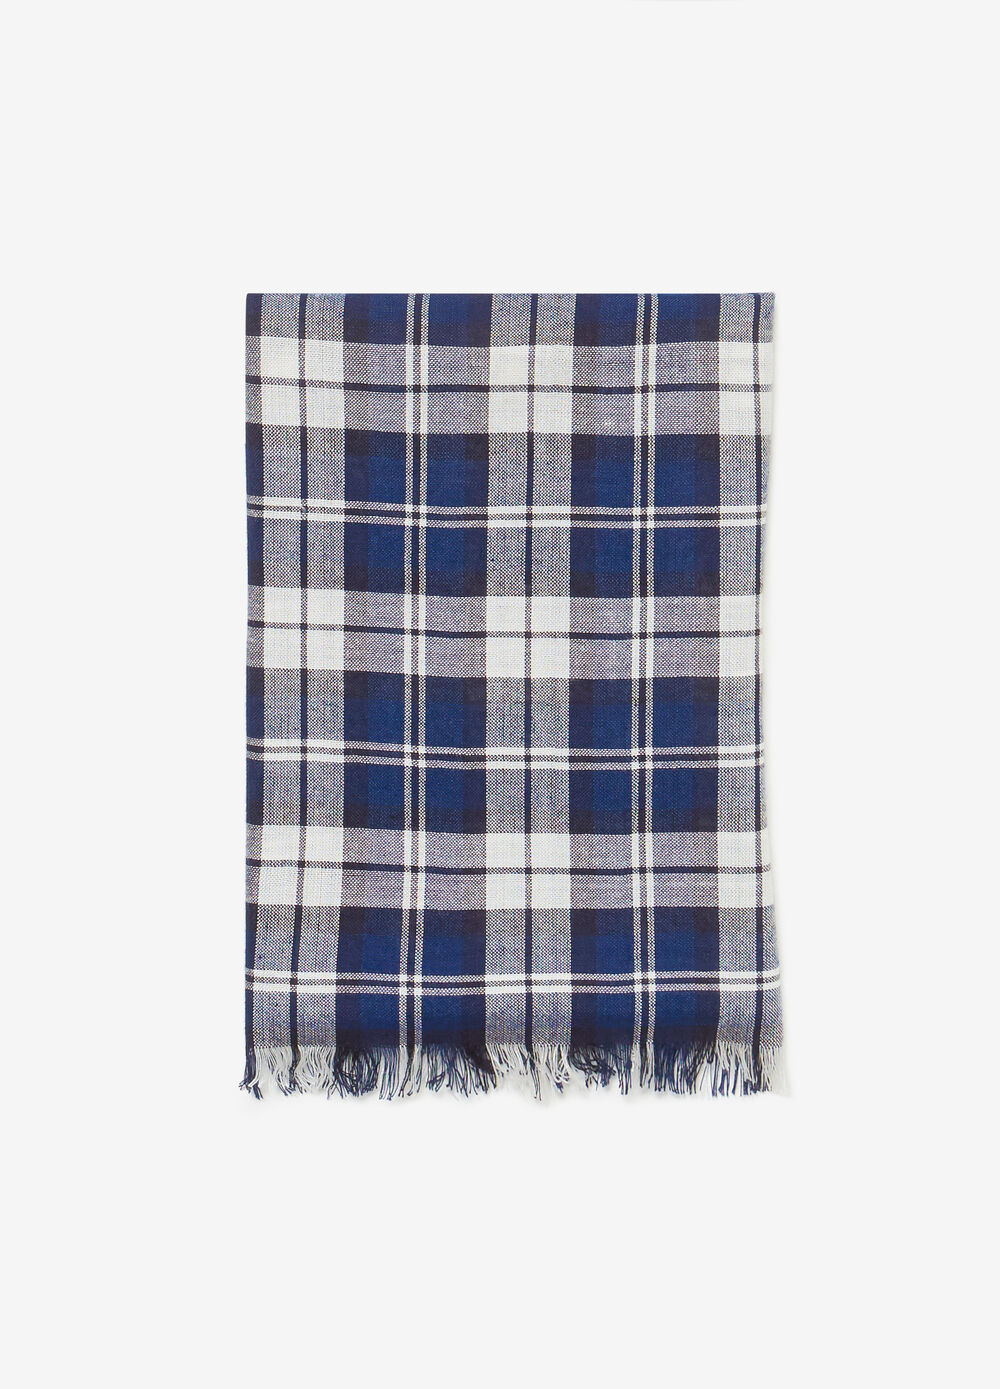 Fringed pashmina with check pattern